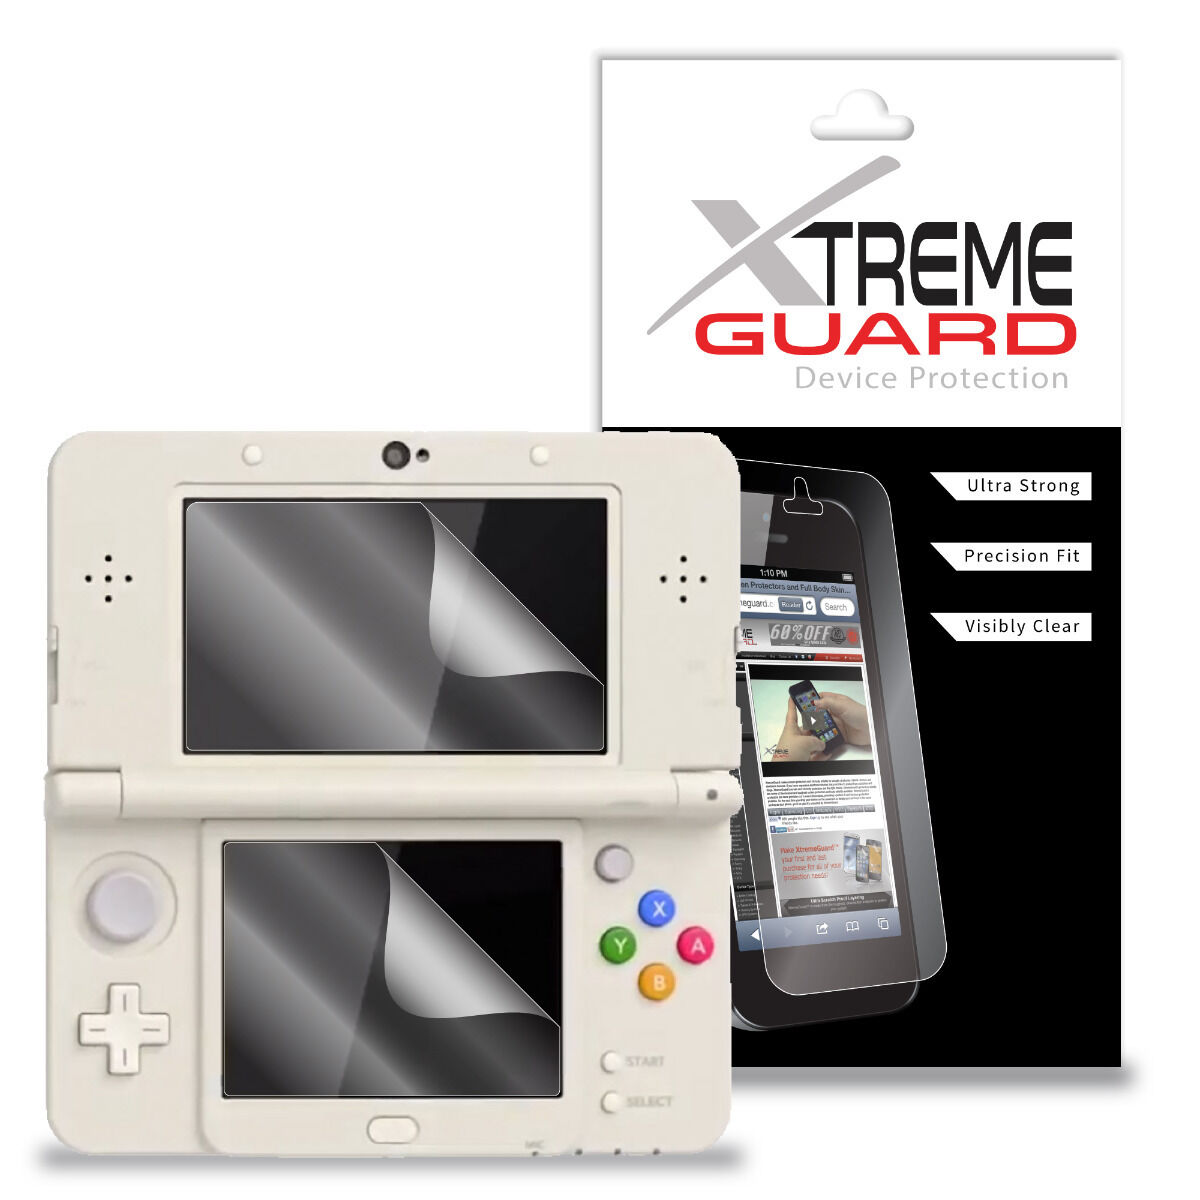 Genuine XtremeGuard LCD Screen Protector Skin Cover For Nint